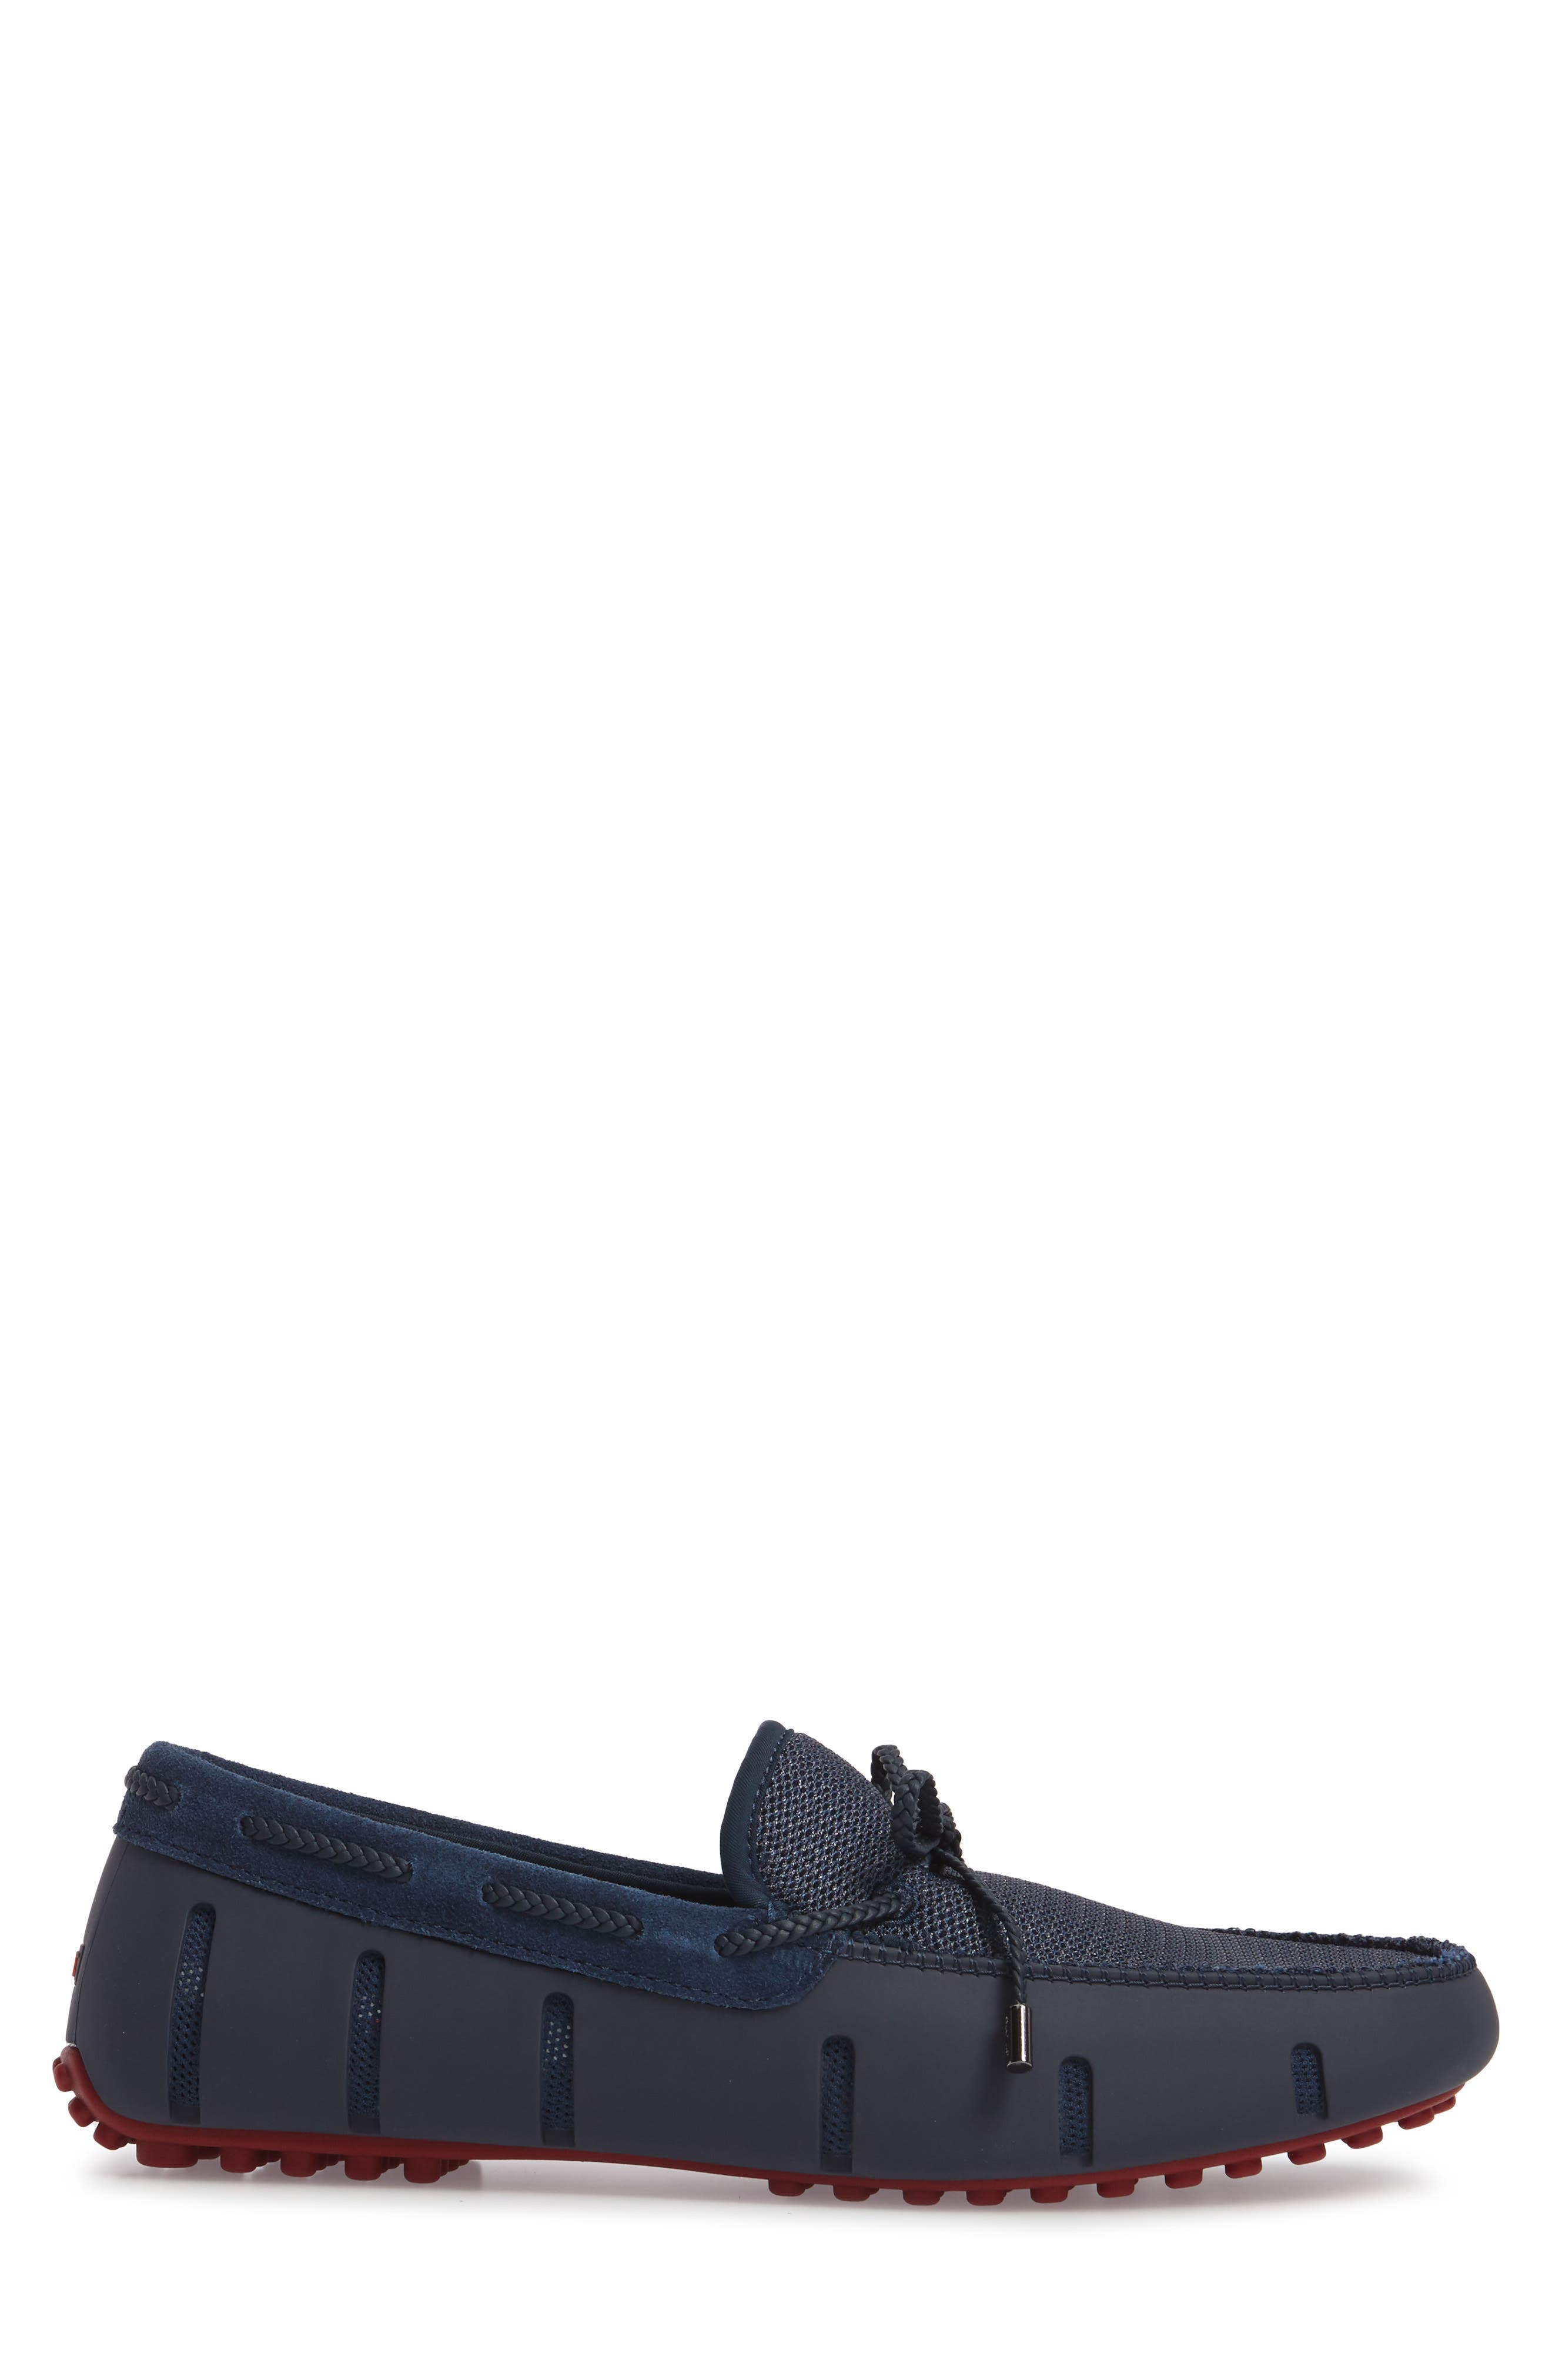 Driving Shoe,                             Alternate thumbnail 3, color,                             Navy / Deep Red